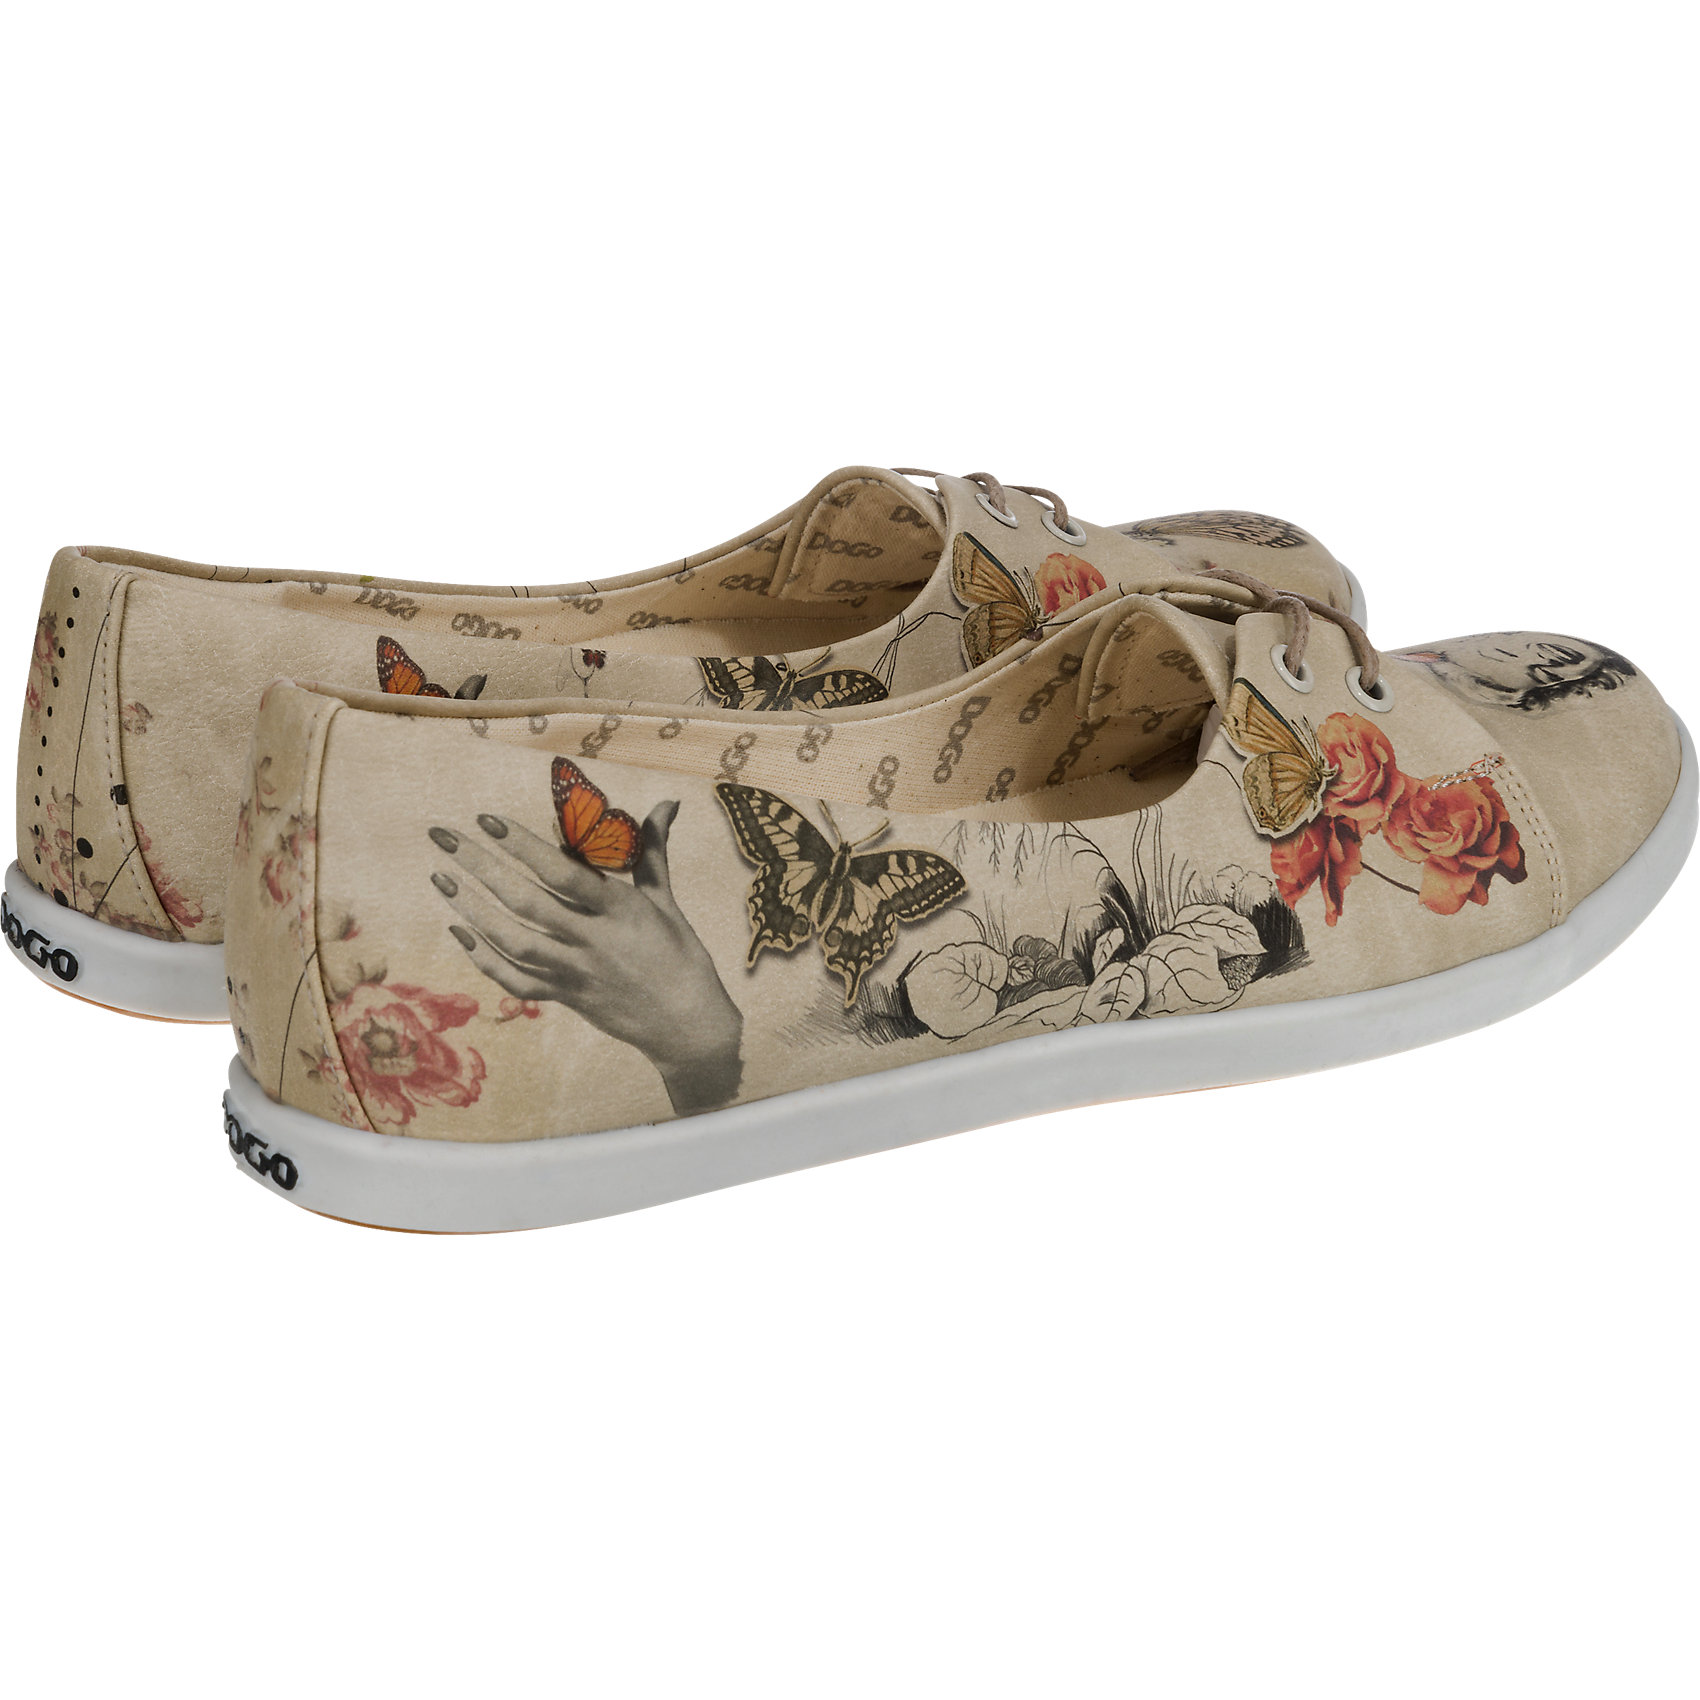 Neu-Dogo-Shoes-Marilyn-With-Butterflies-Sneakers-mehrfarbig-